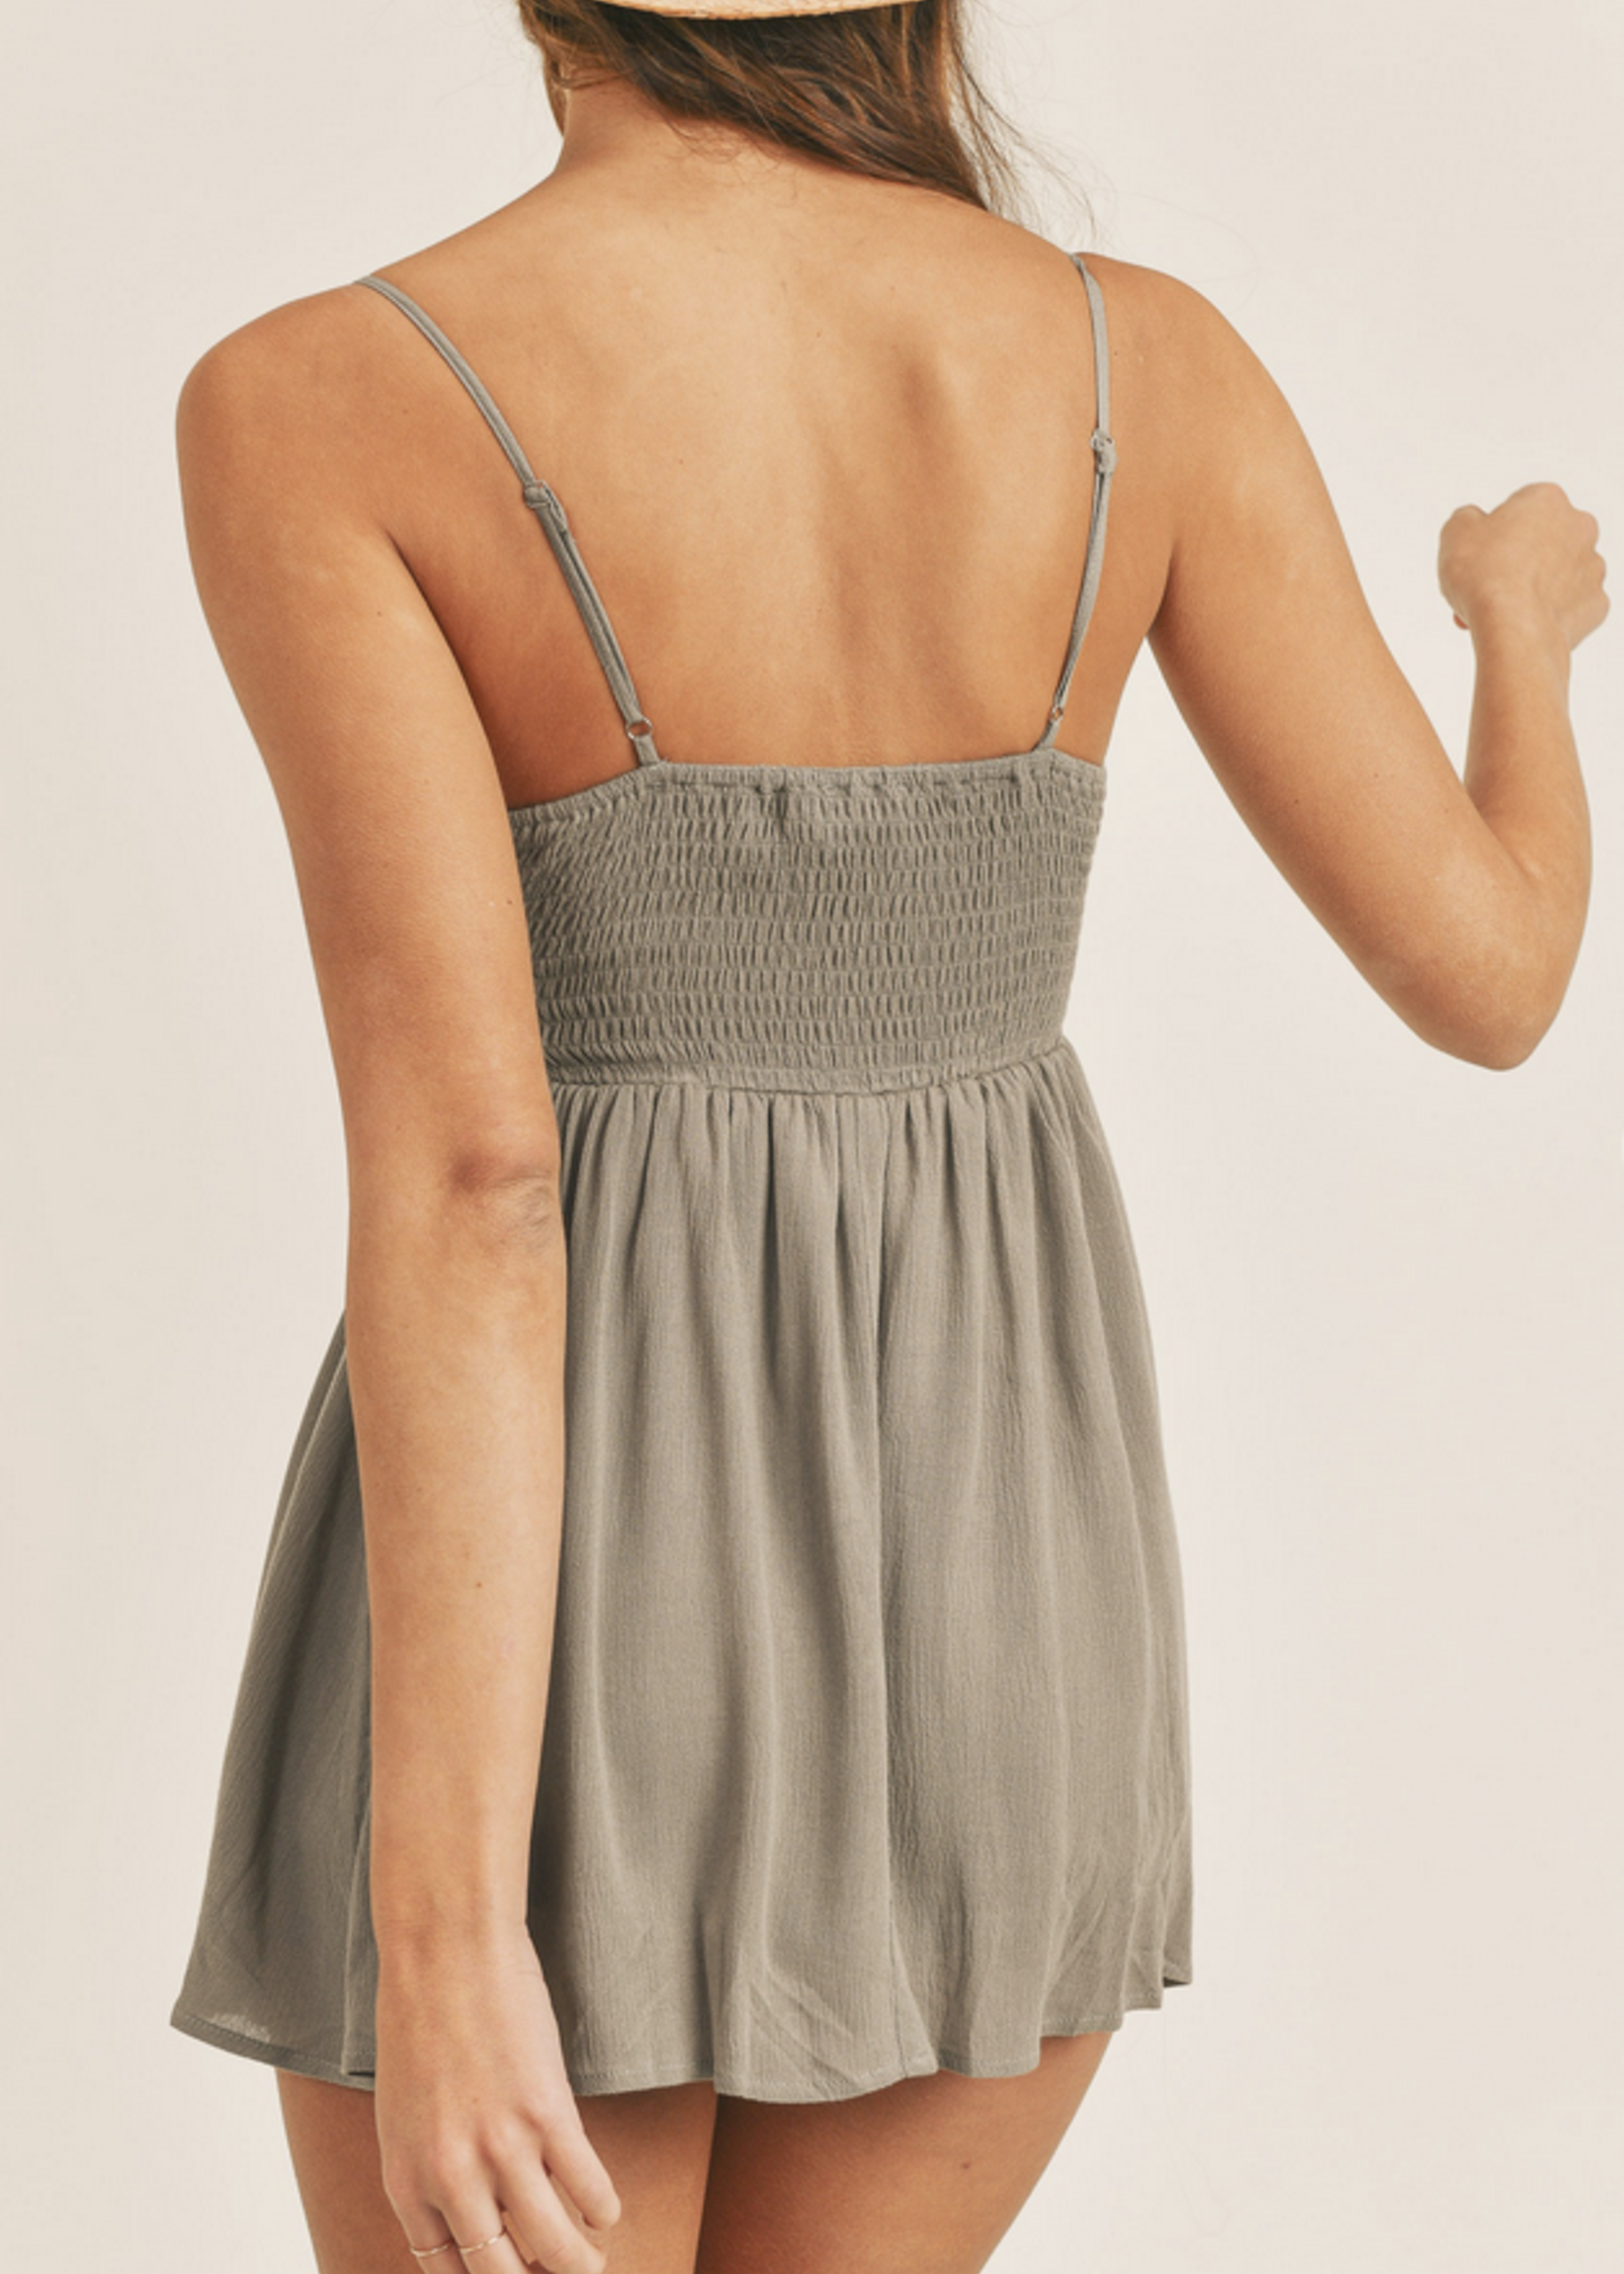 mable mable lima romper